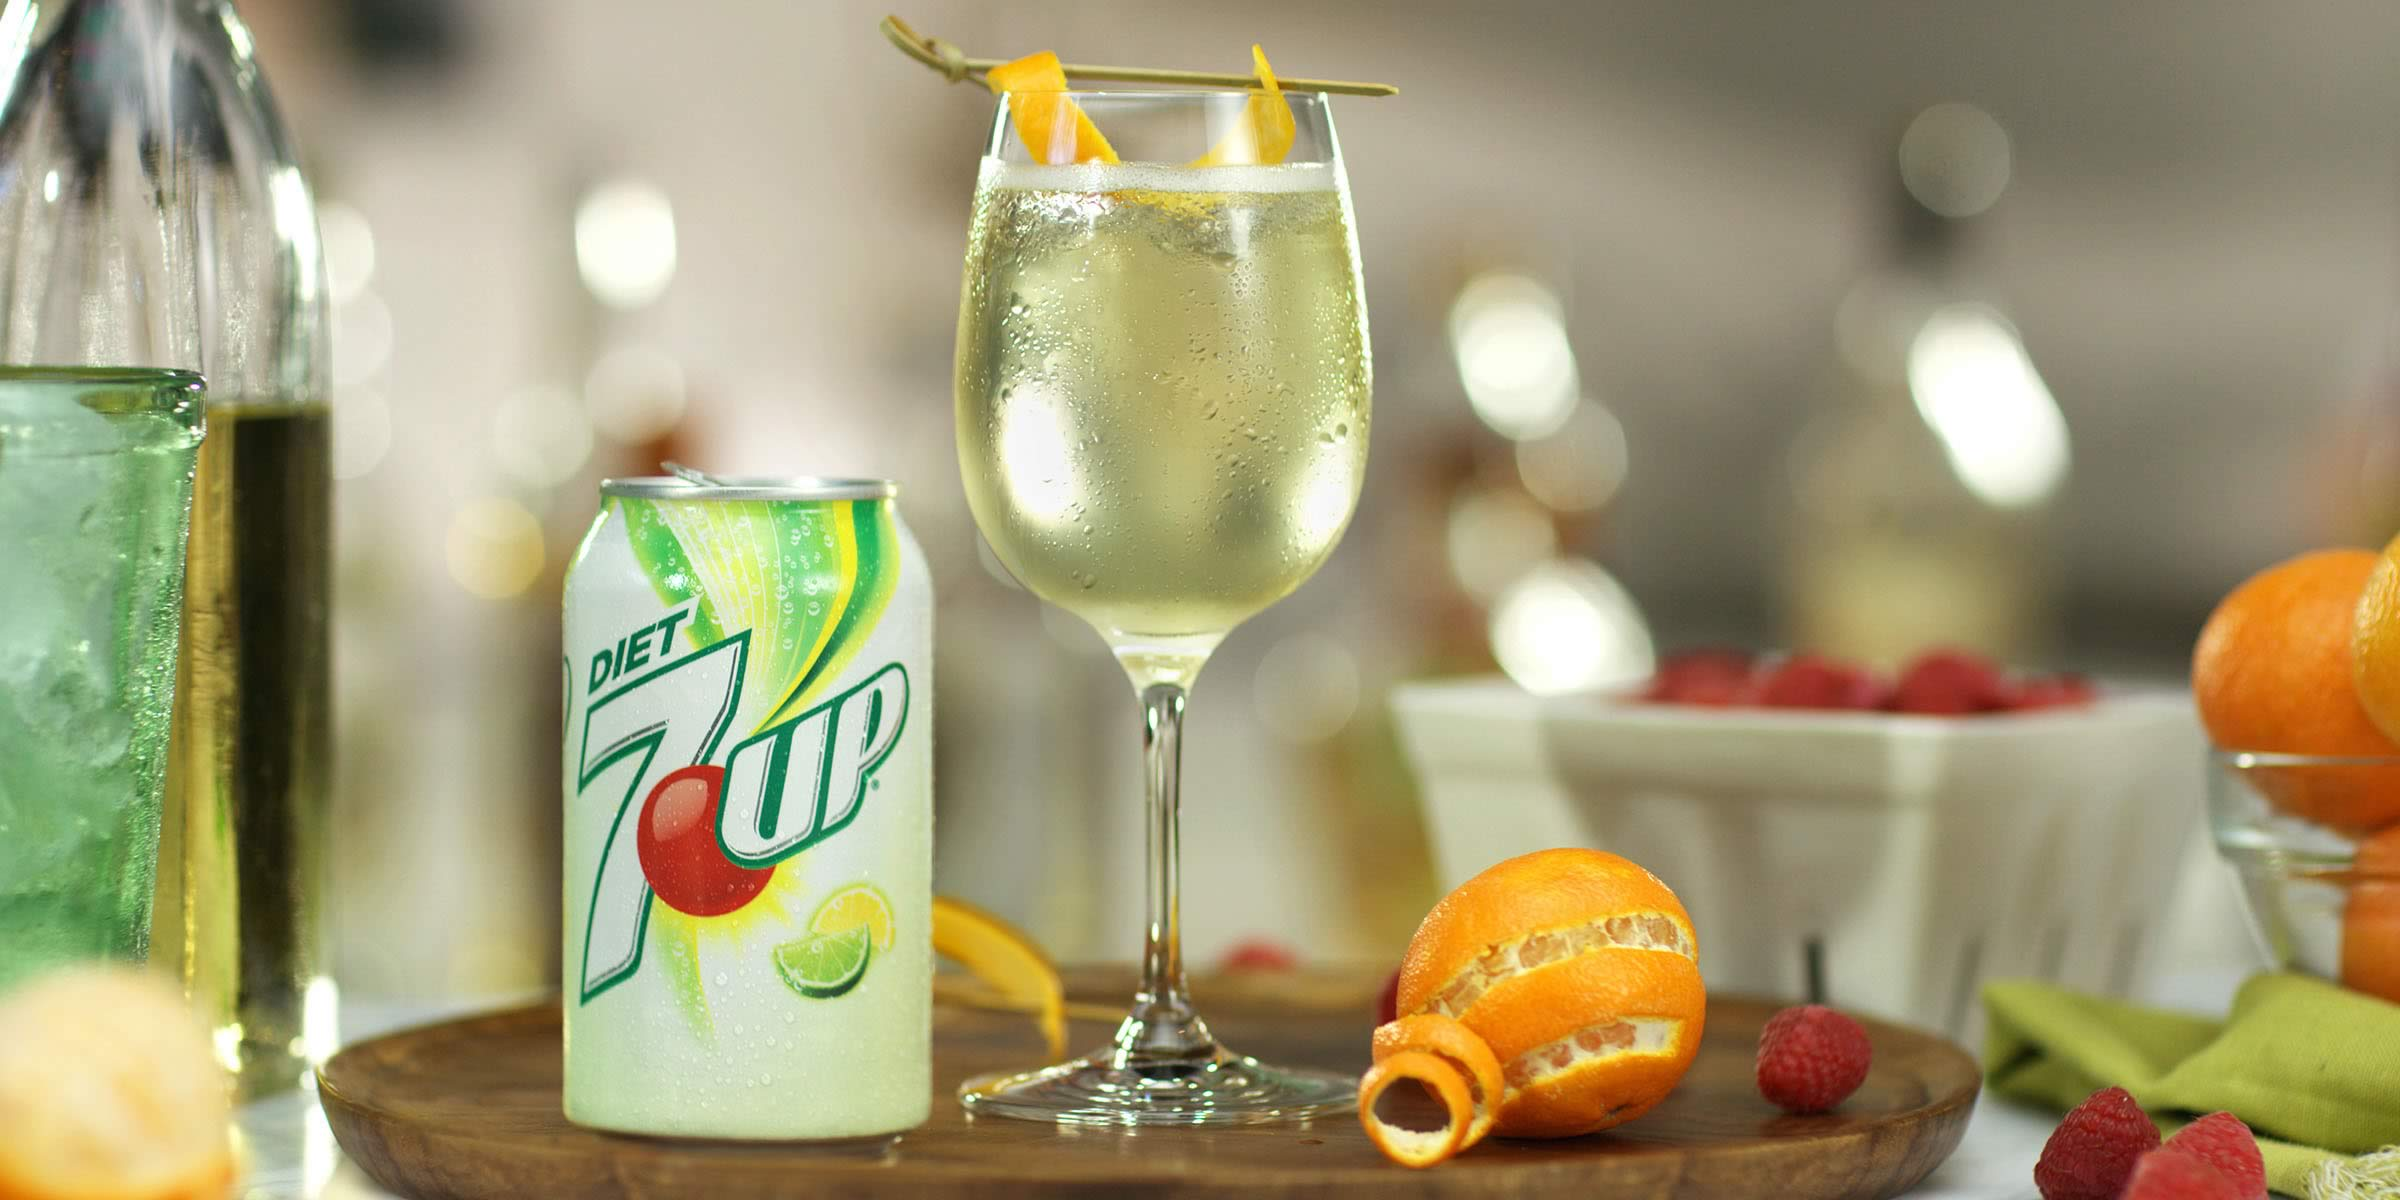 Receta De Vino Blanco Con Soda 7up